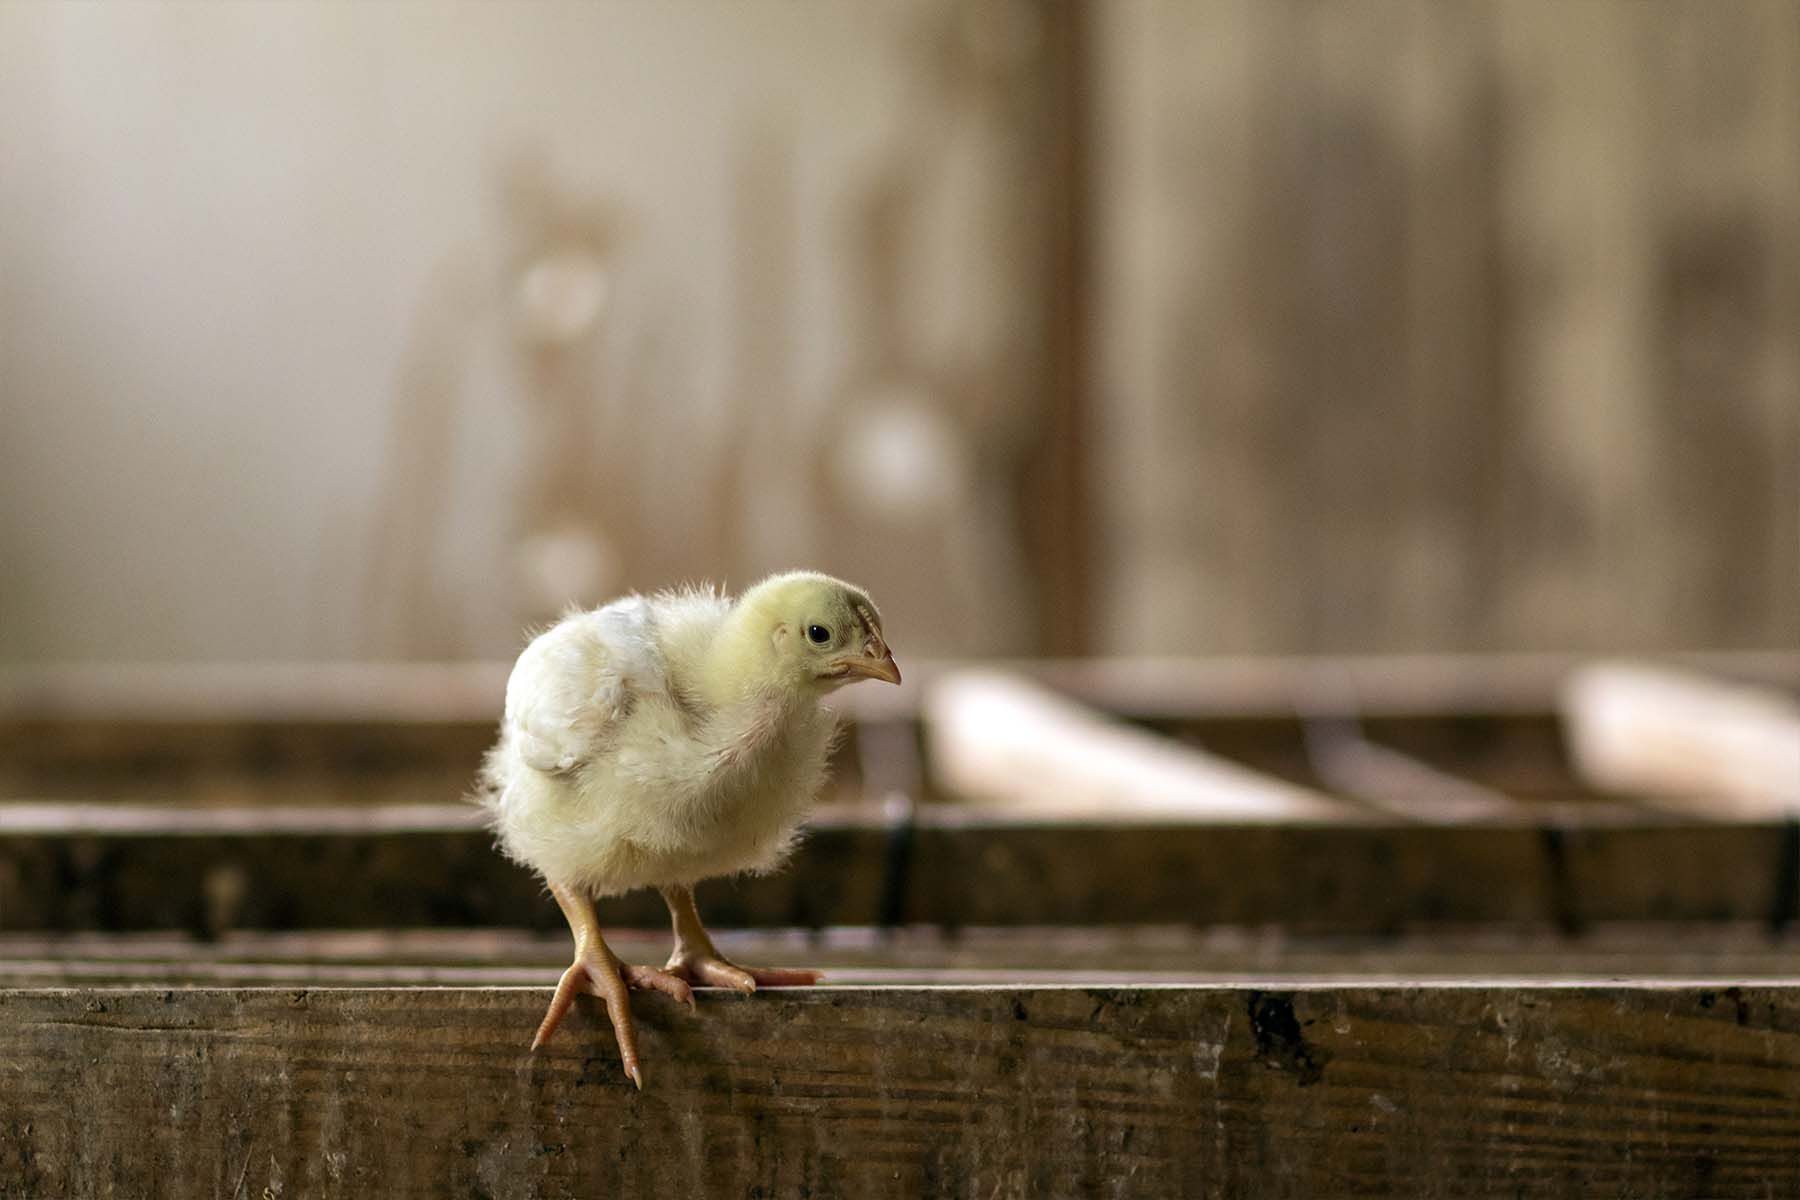 fluffy yellow chick rests feet on wood slab